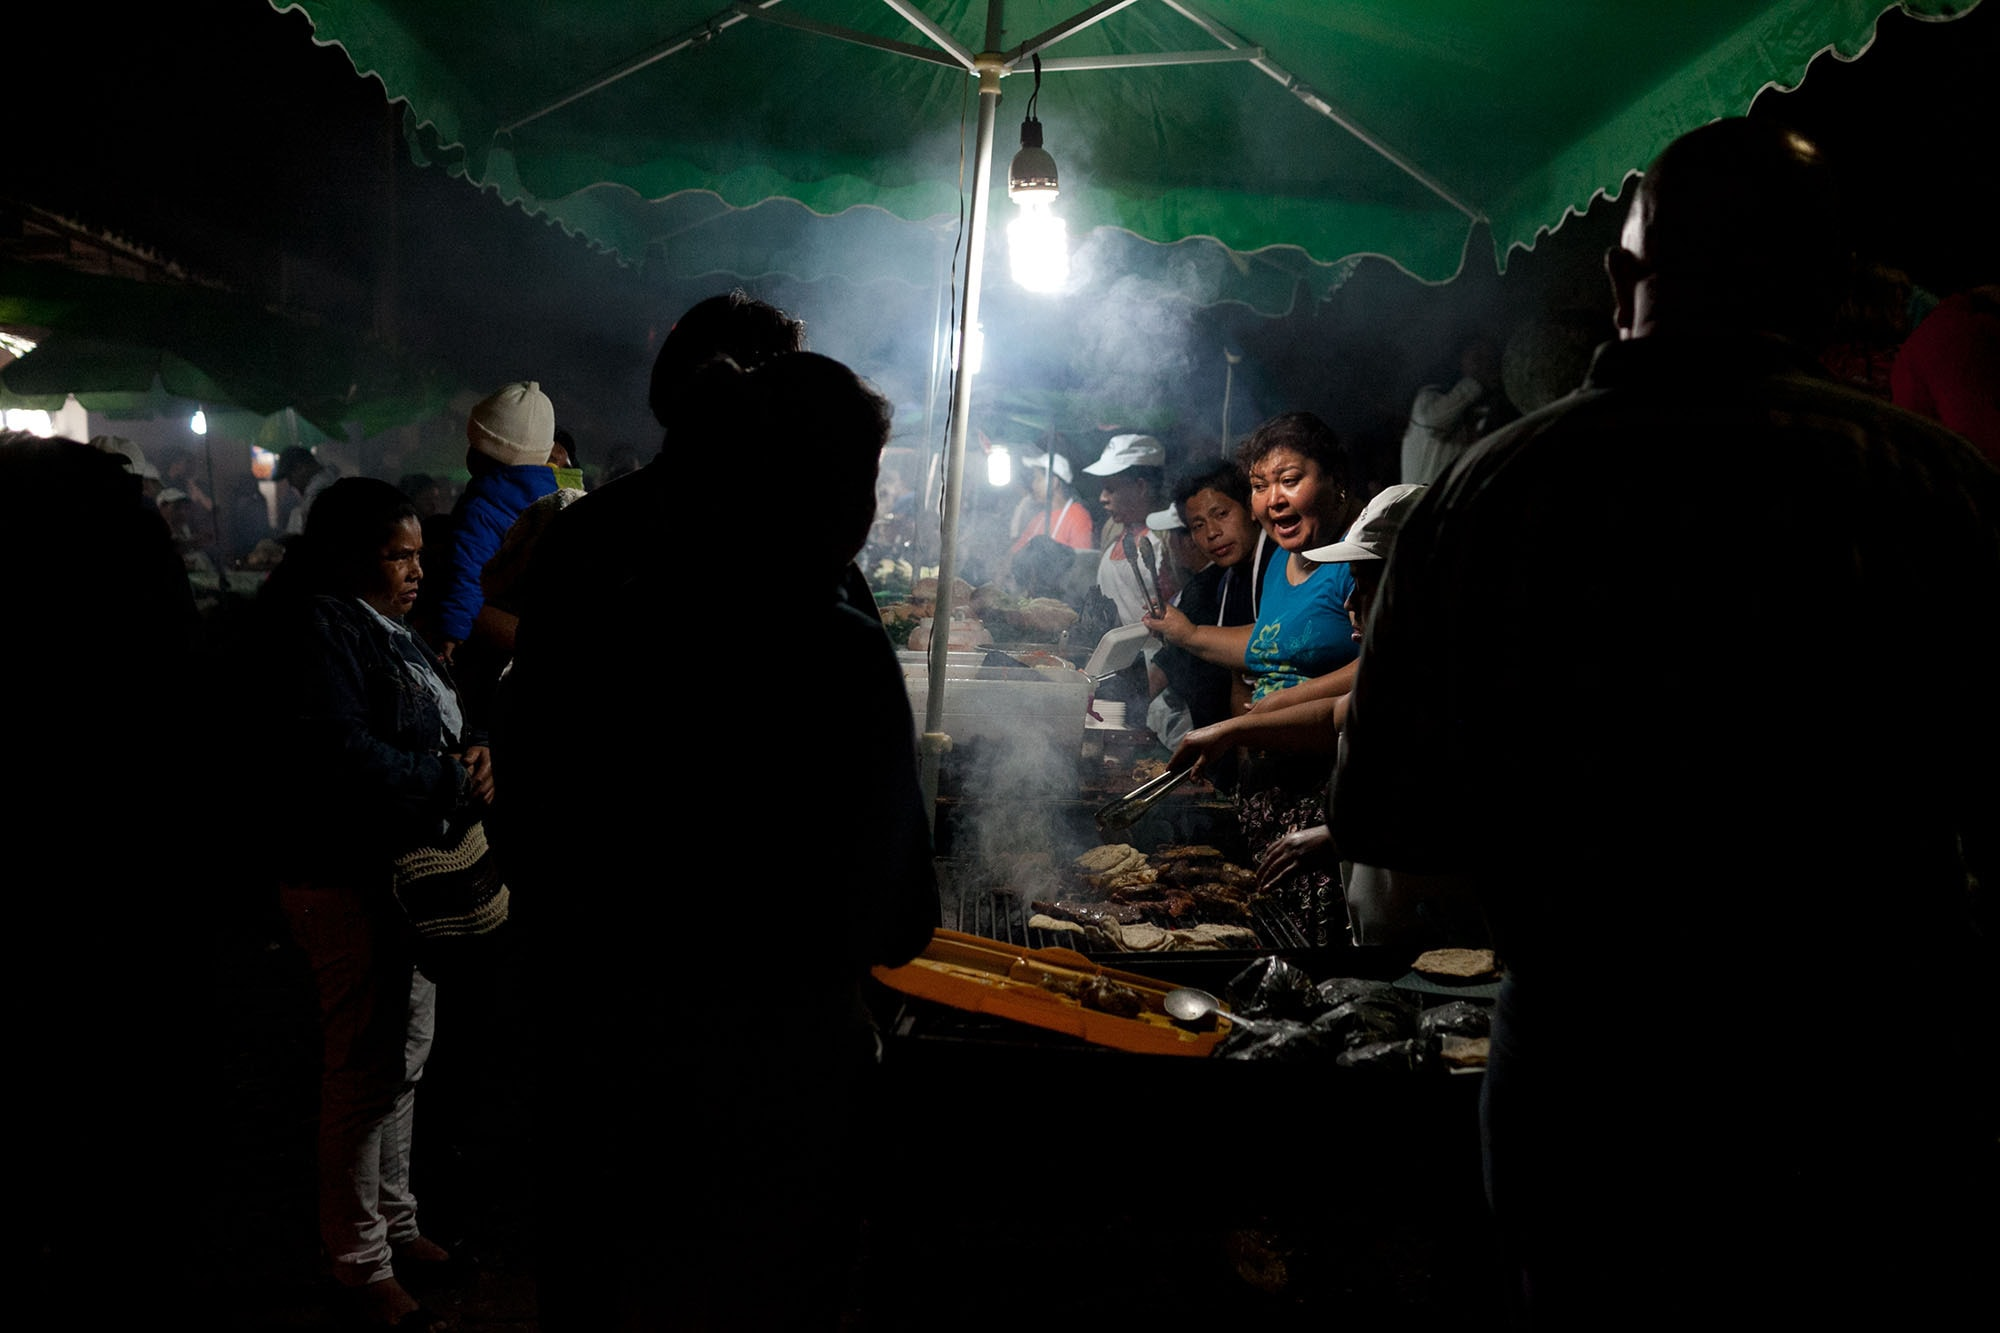 Night market in Antigua, Guatemala